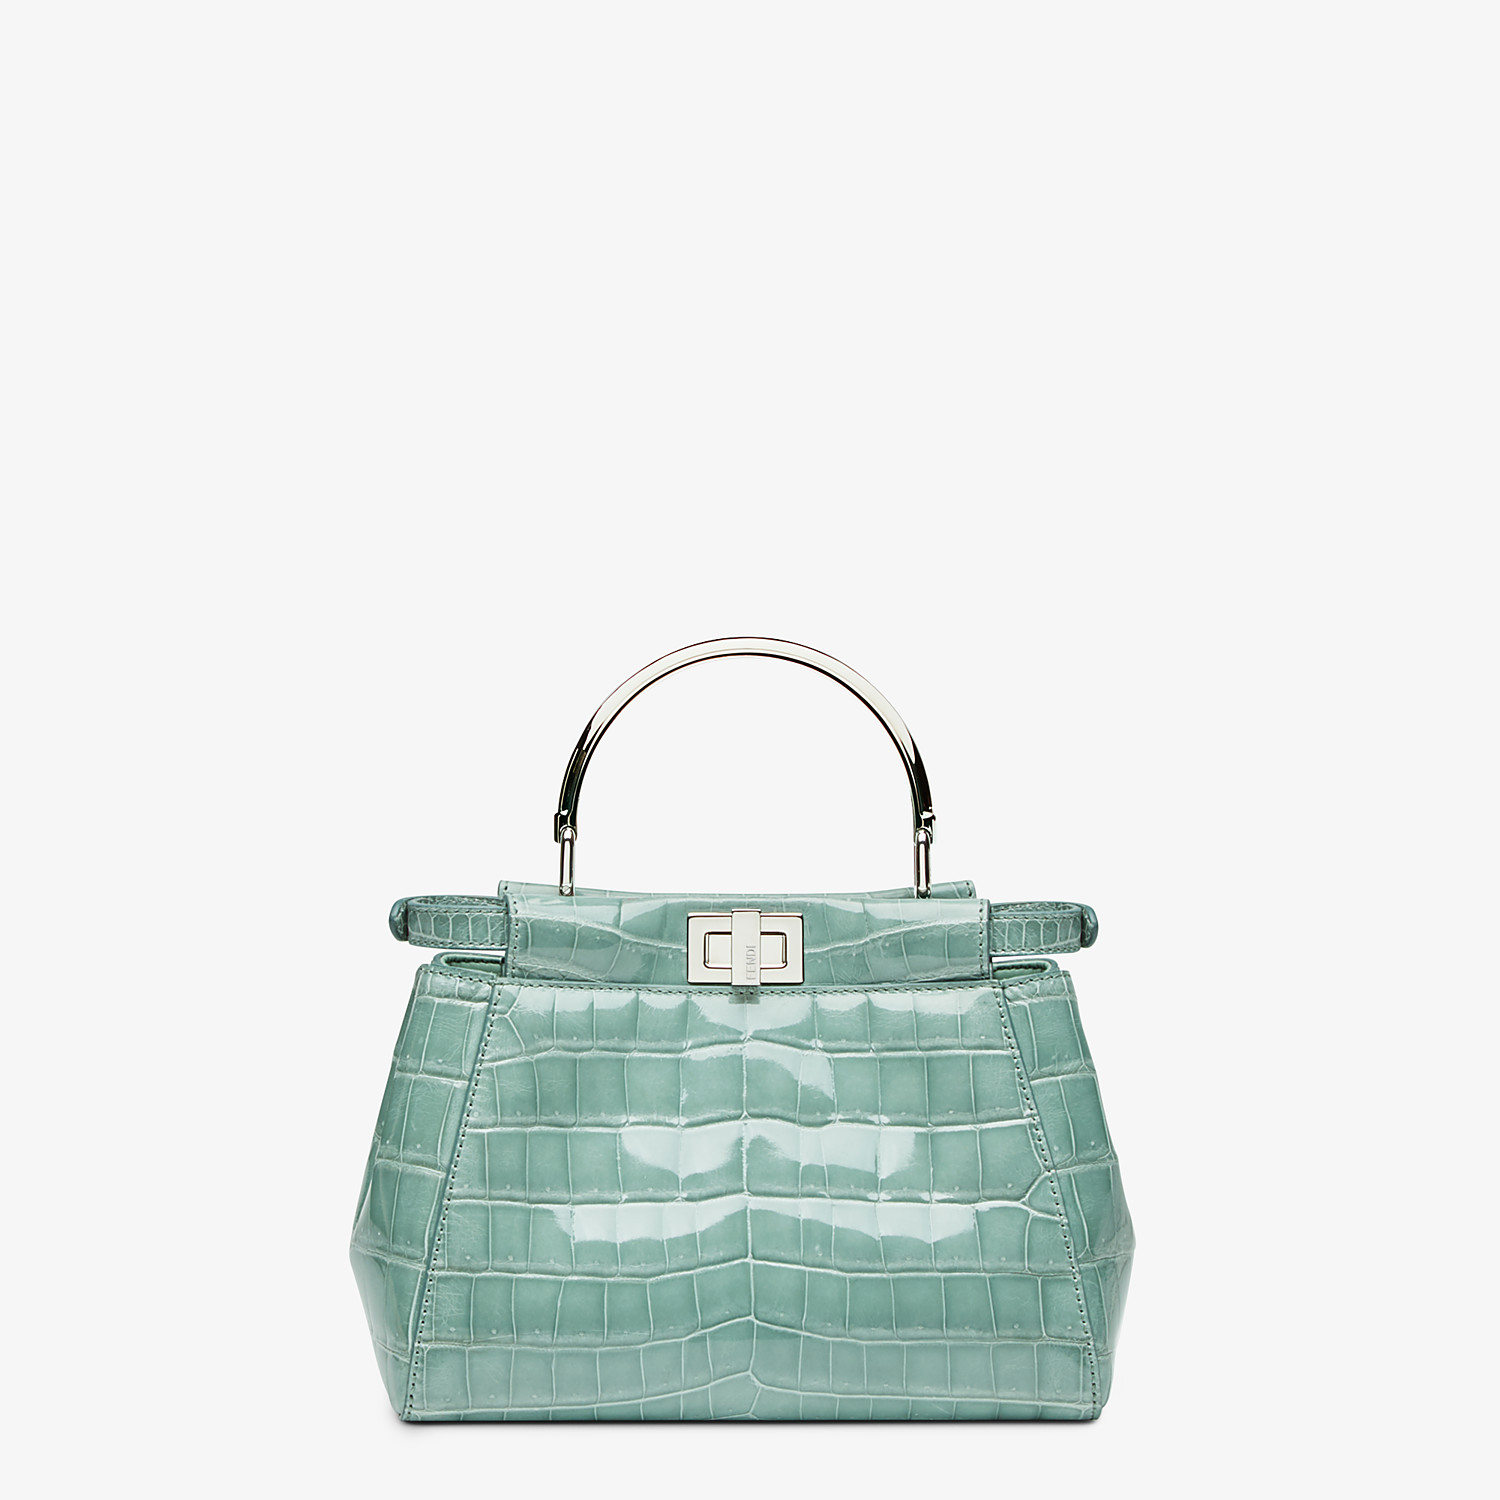 FENDI PEEKABOO ICONIC MINI - handbag in aqua green crocodile - view 3 detail